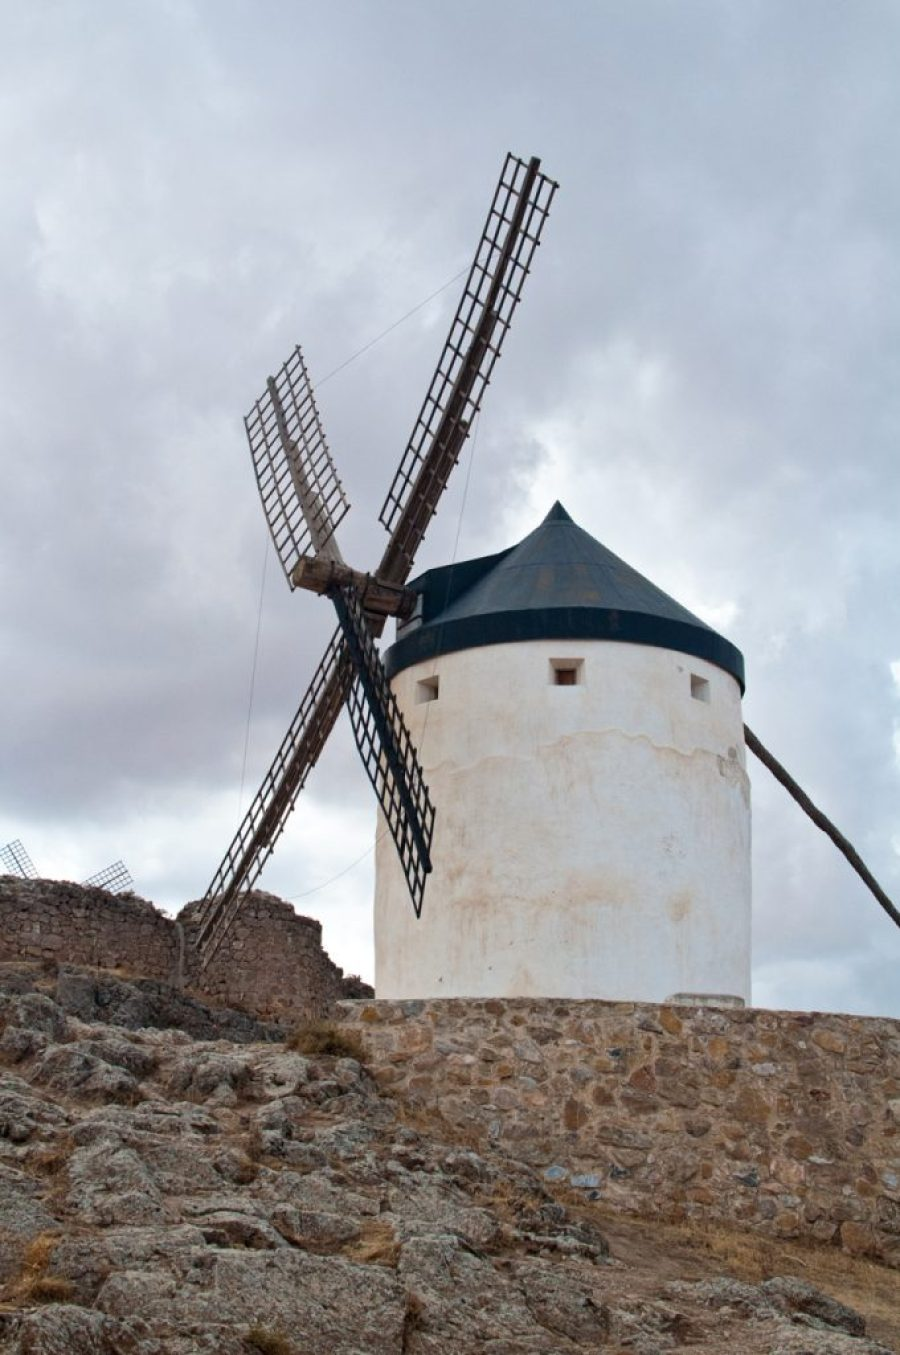 Great 8 day spain roadtrip itinerary - Consuegra